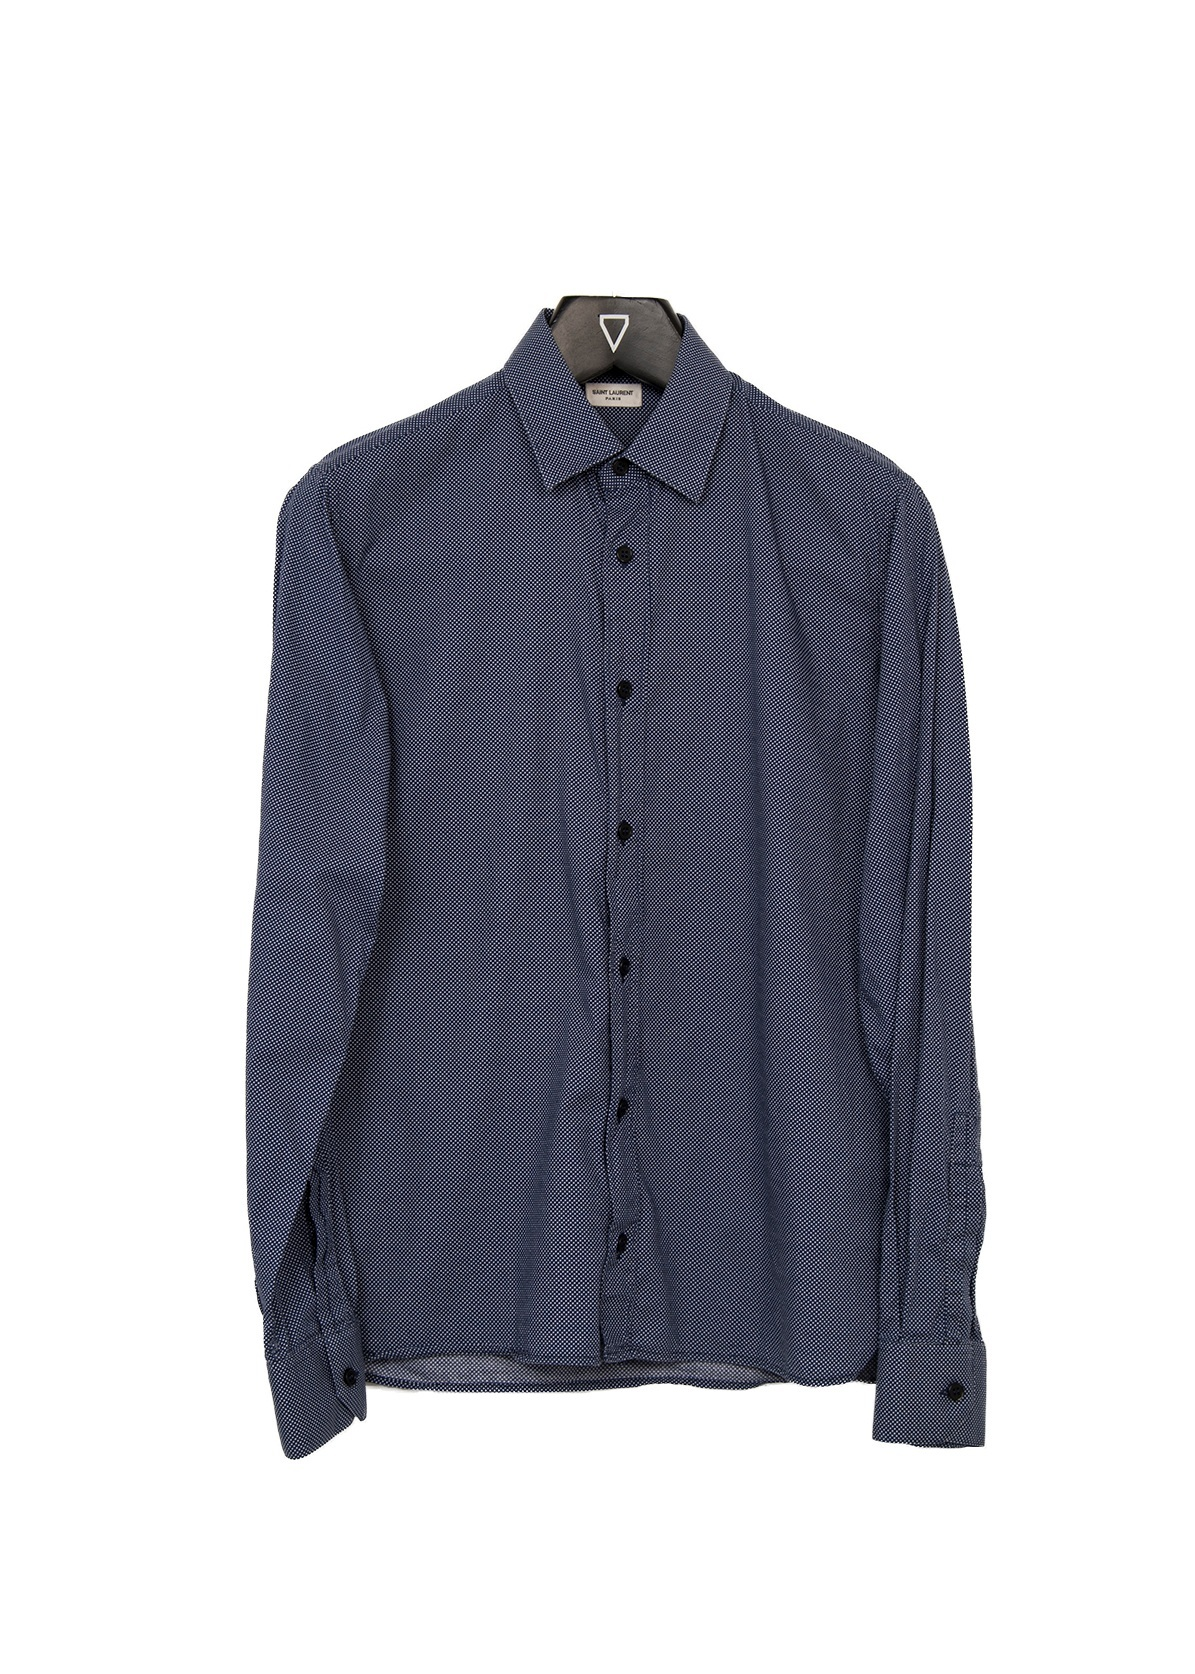 "15 1/2 SAINT LAURENT SHIRT - ""SAINT-SH05"""